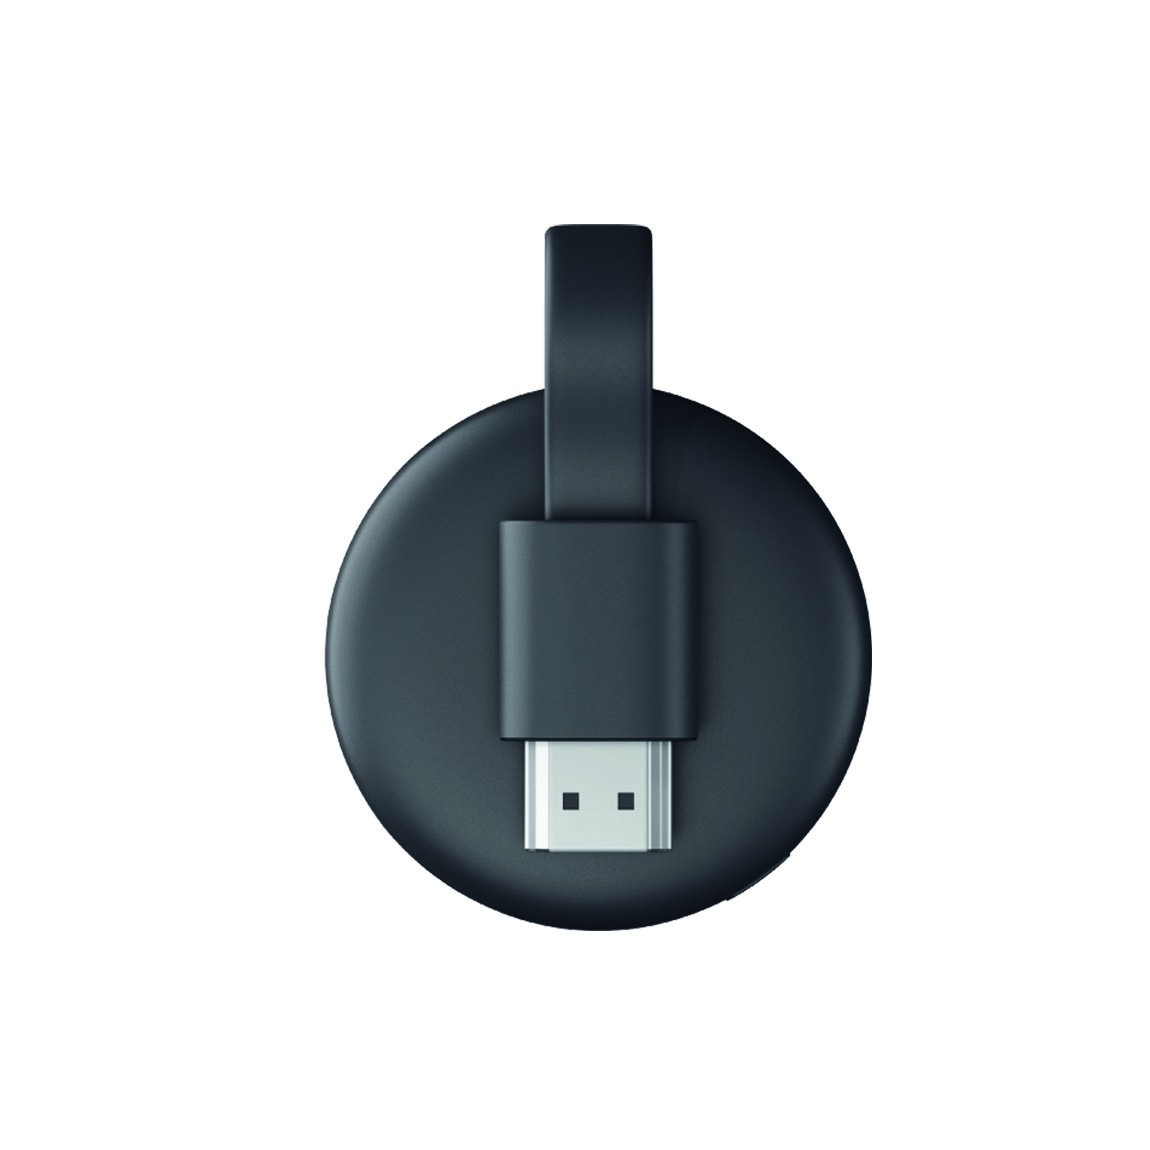 GOOGLE Chromecast Streaming Media Player HDMI WLAN-ac 3. Generation